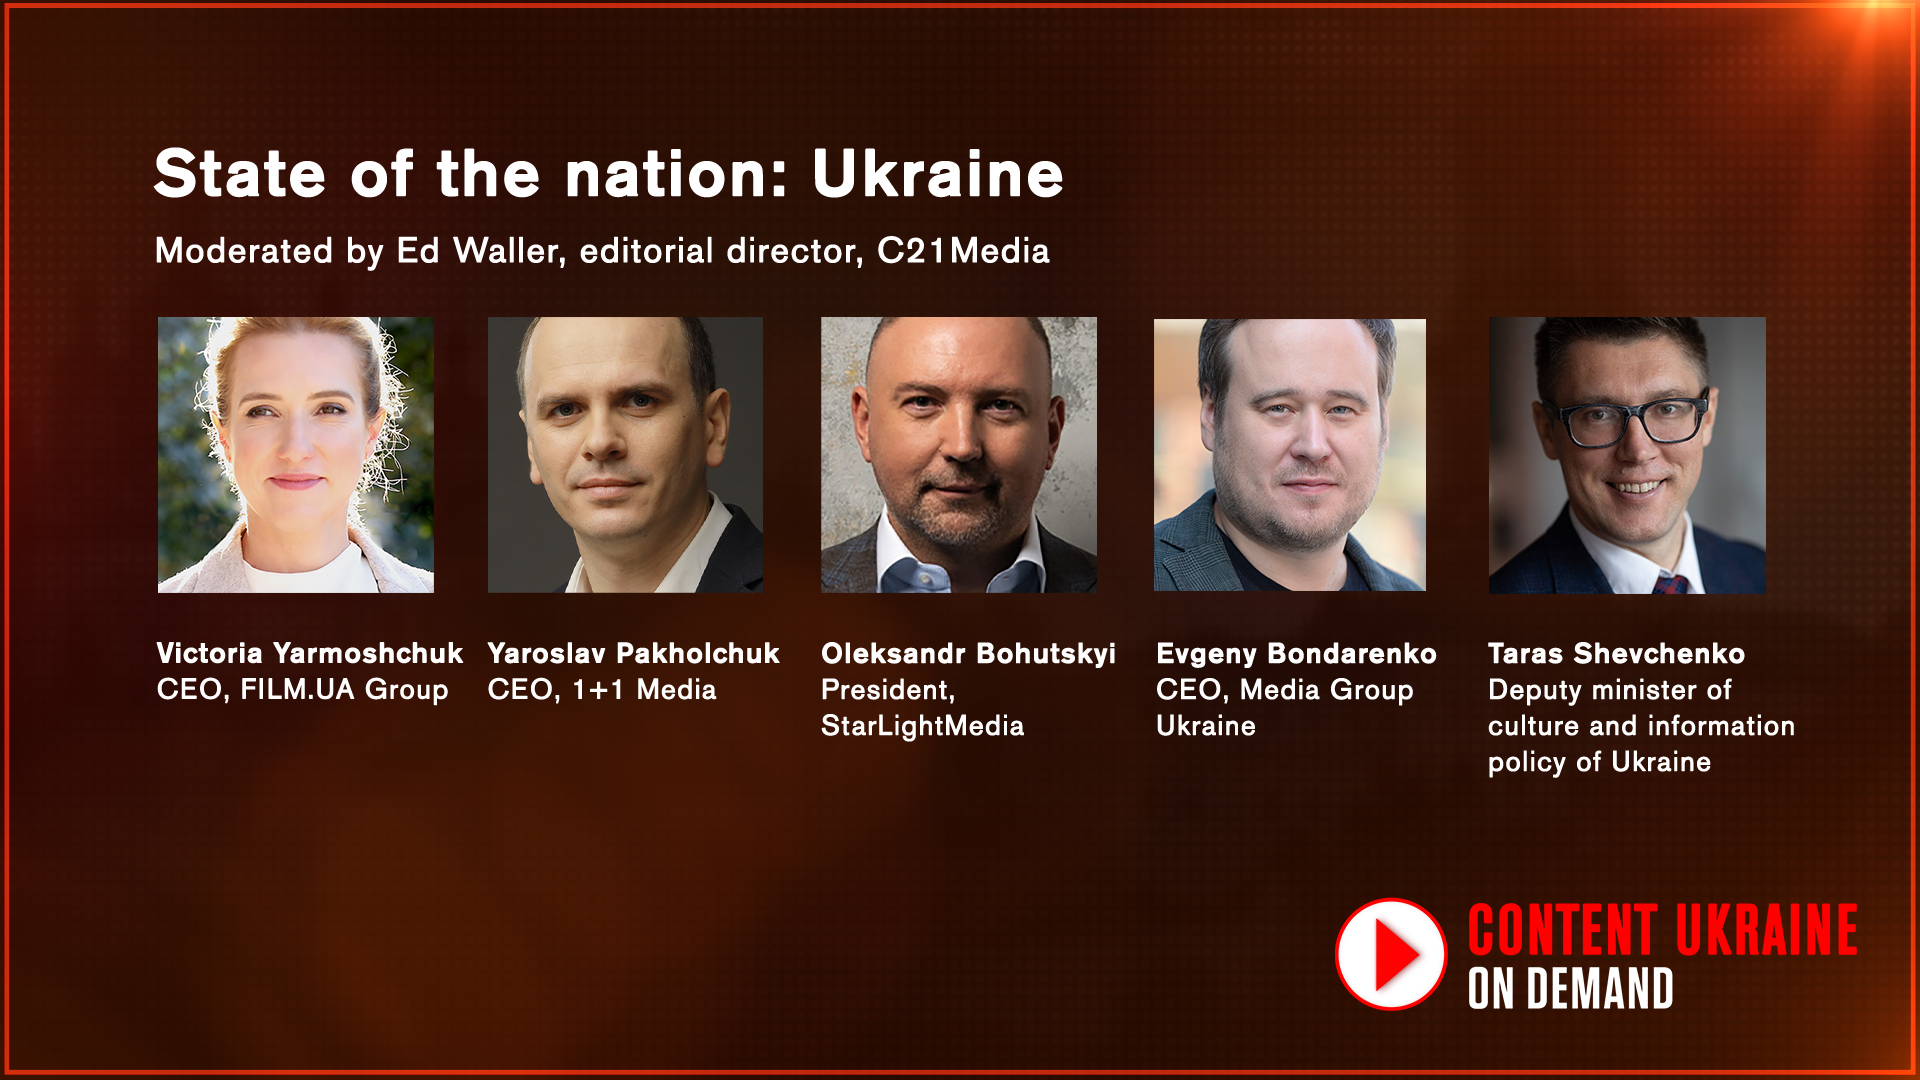 State of the nation: Ukraine